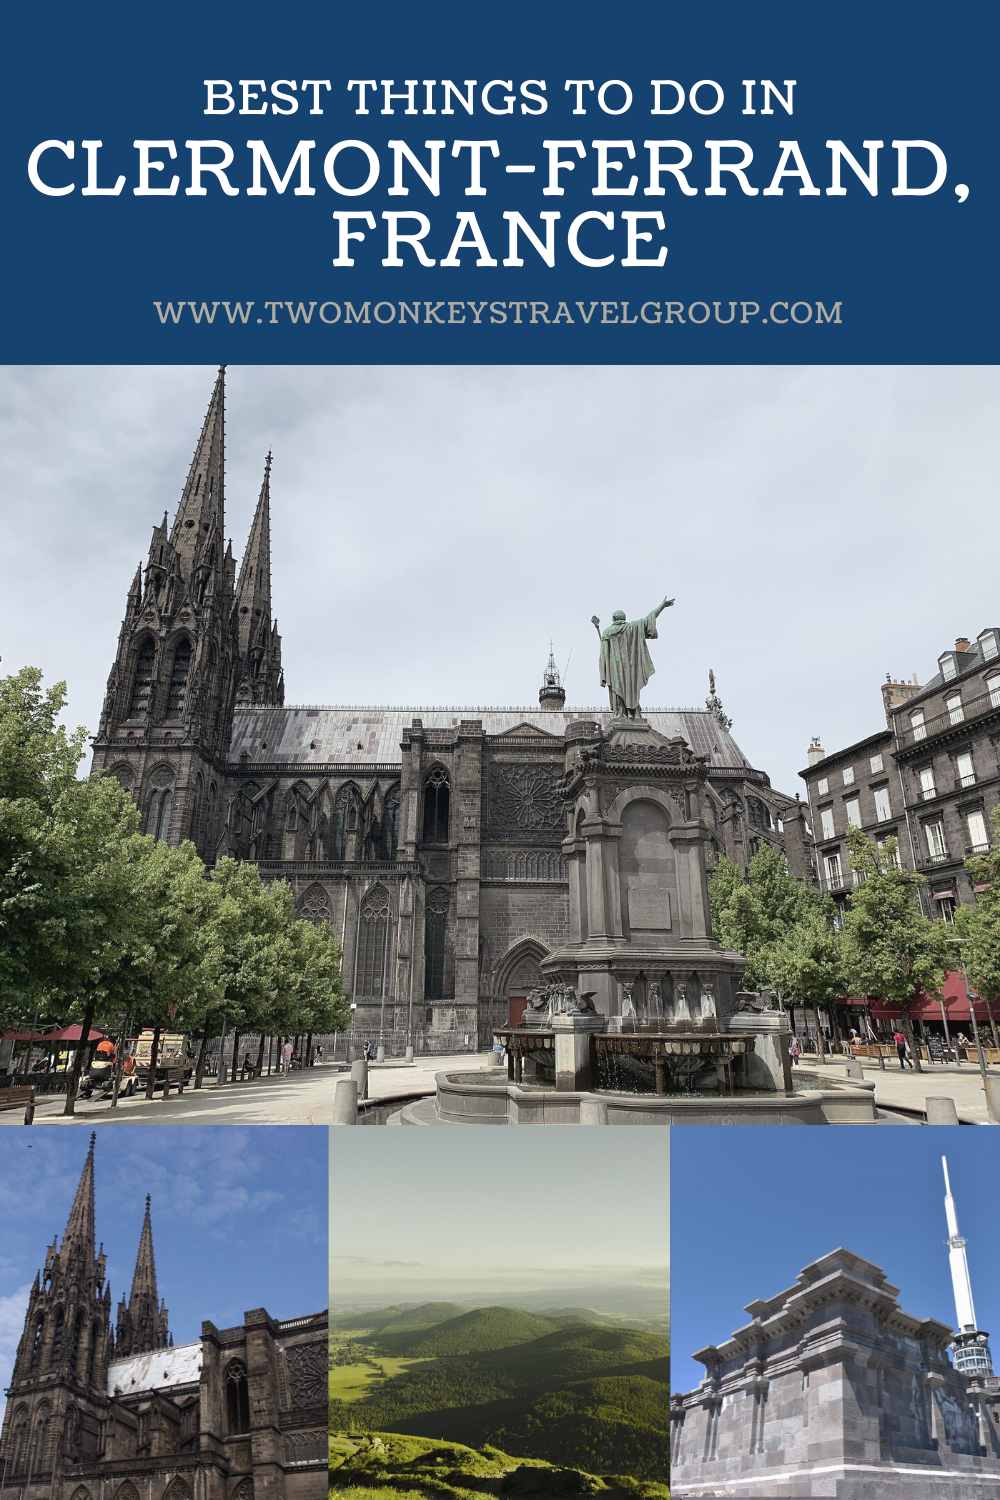 15 Best Things To Do in Clermont Ferrand, France